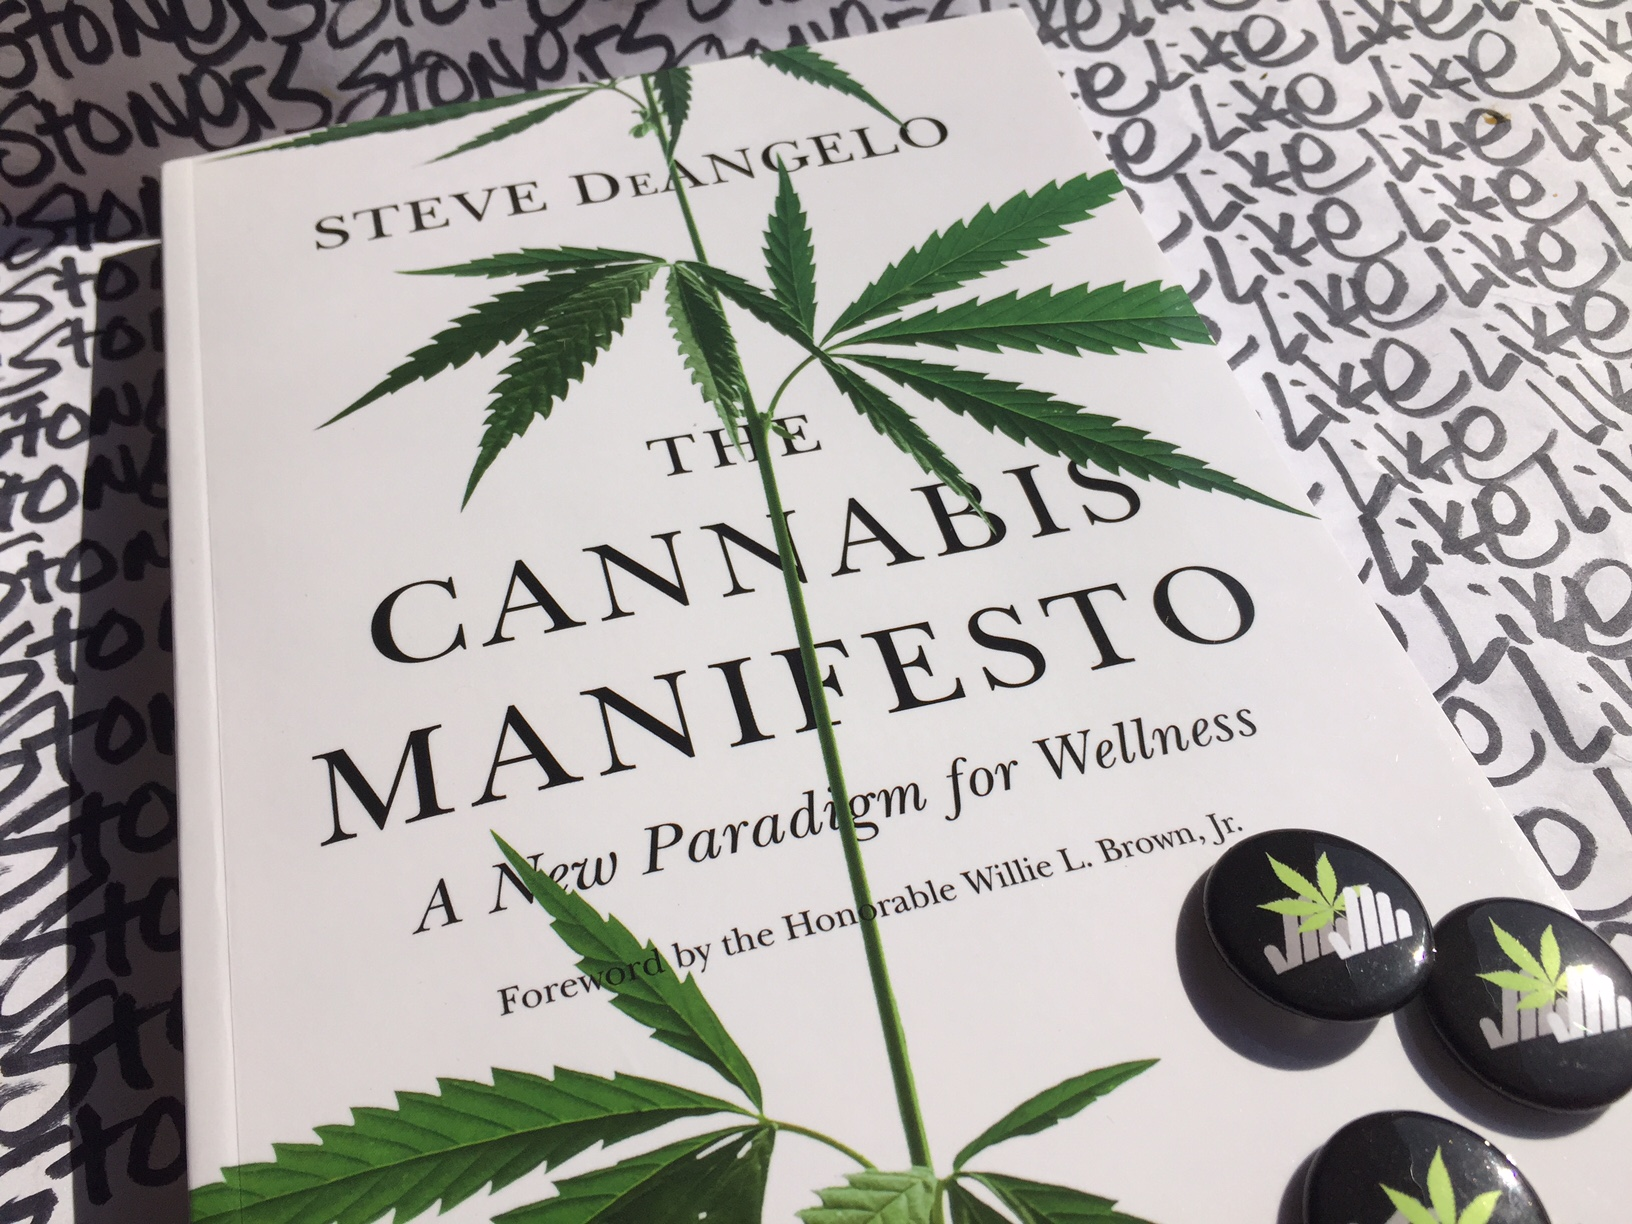 a cannabis manifesto The story of weed – part 1/3 we all know the story of weed, aka cannabis, marijuana, pot, the assassin of youth in truth, that assassin is adulthood and definitely not to be confused as maturity.